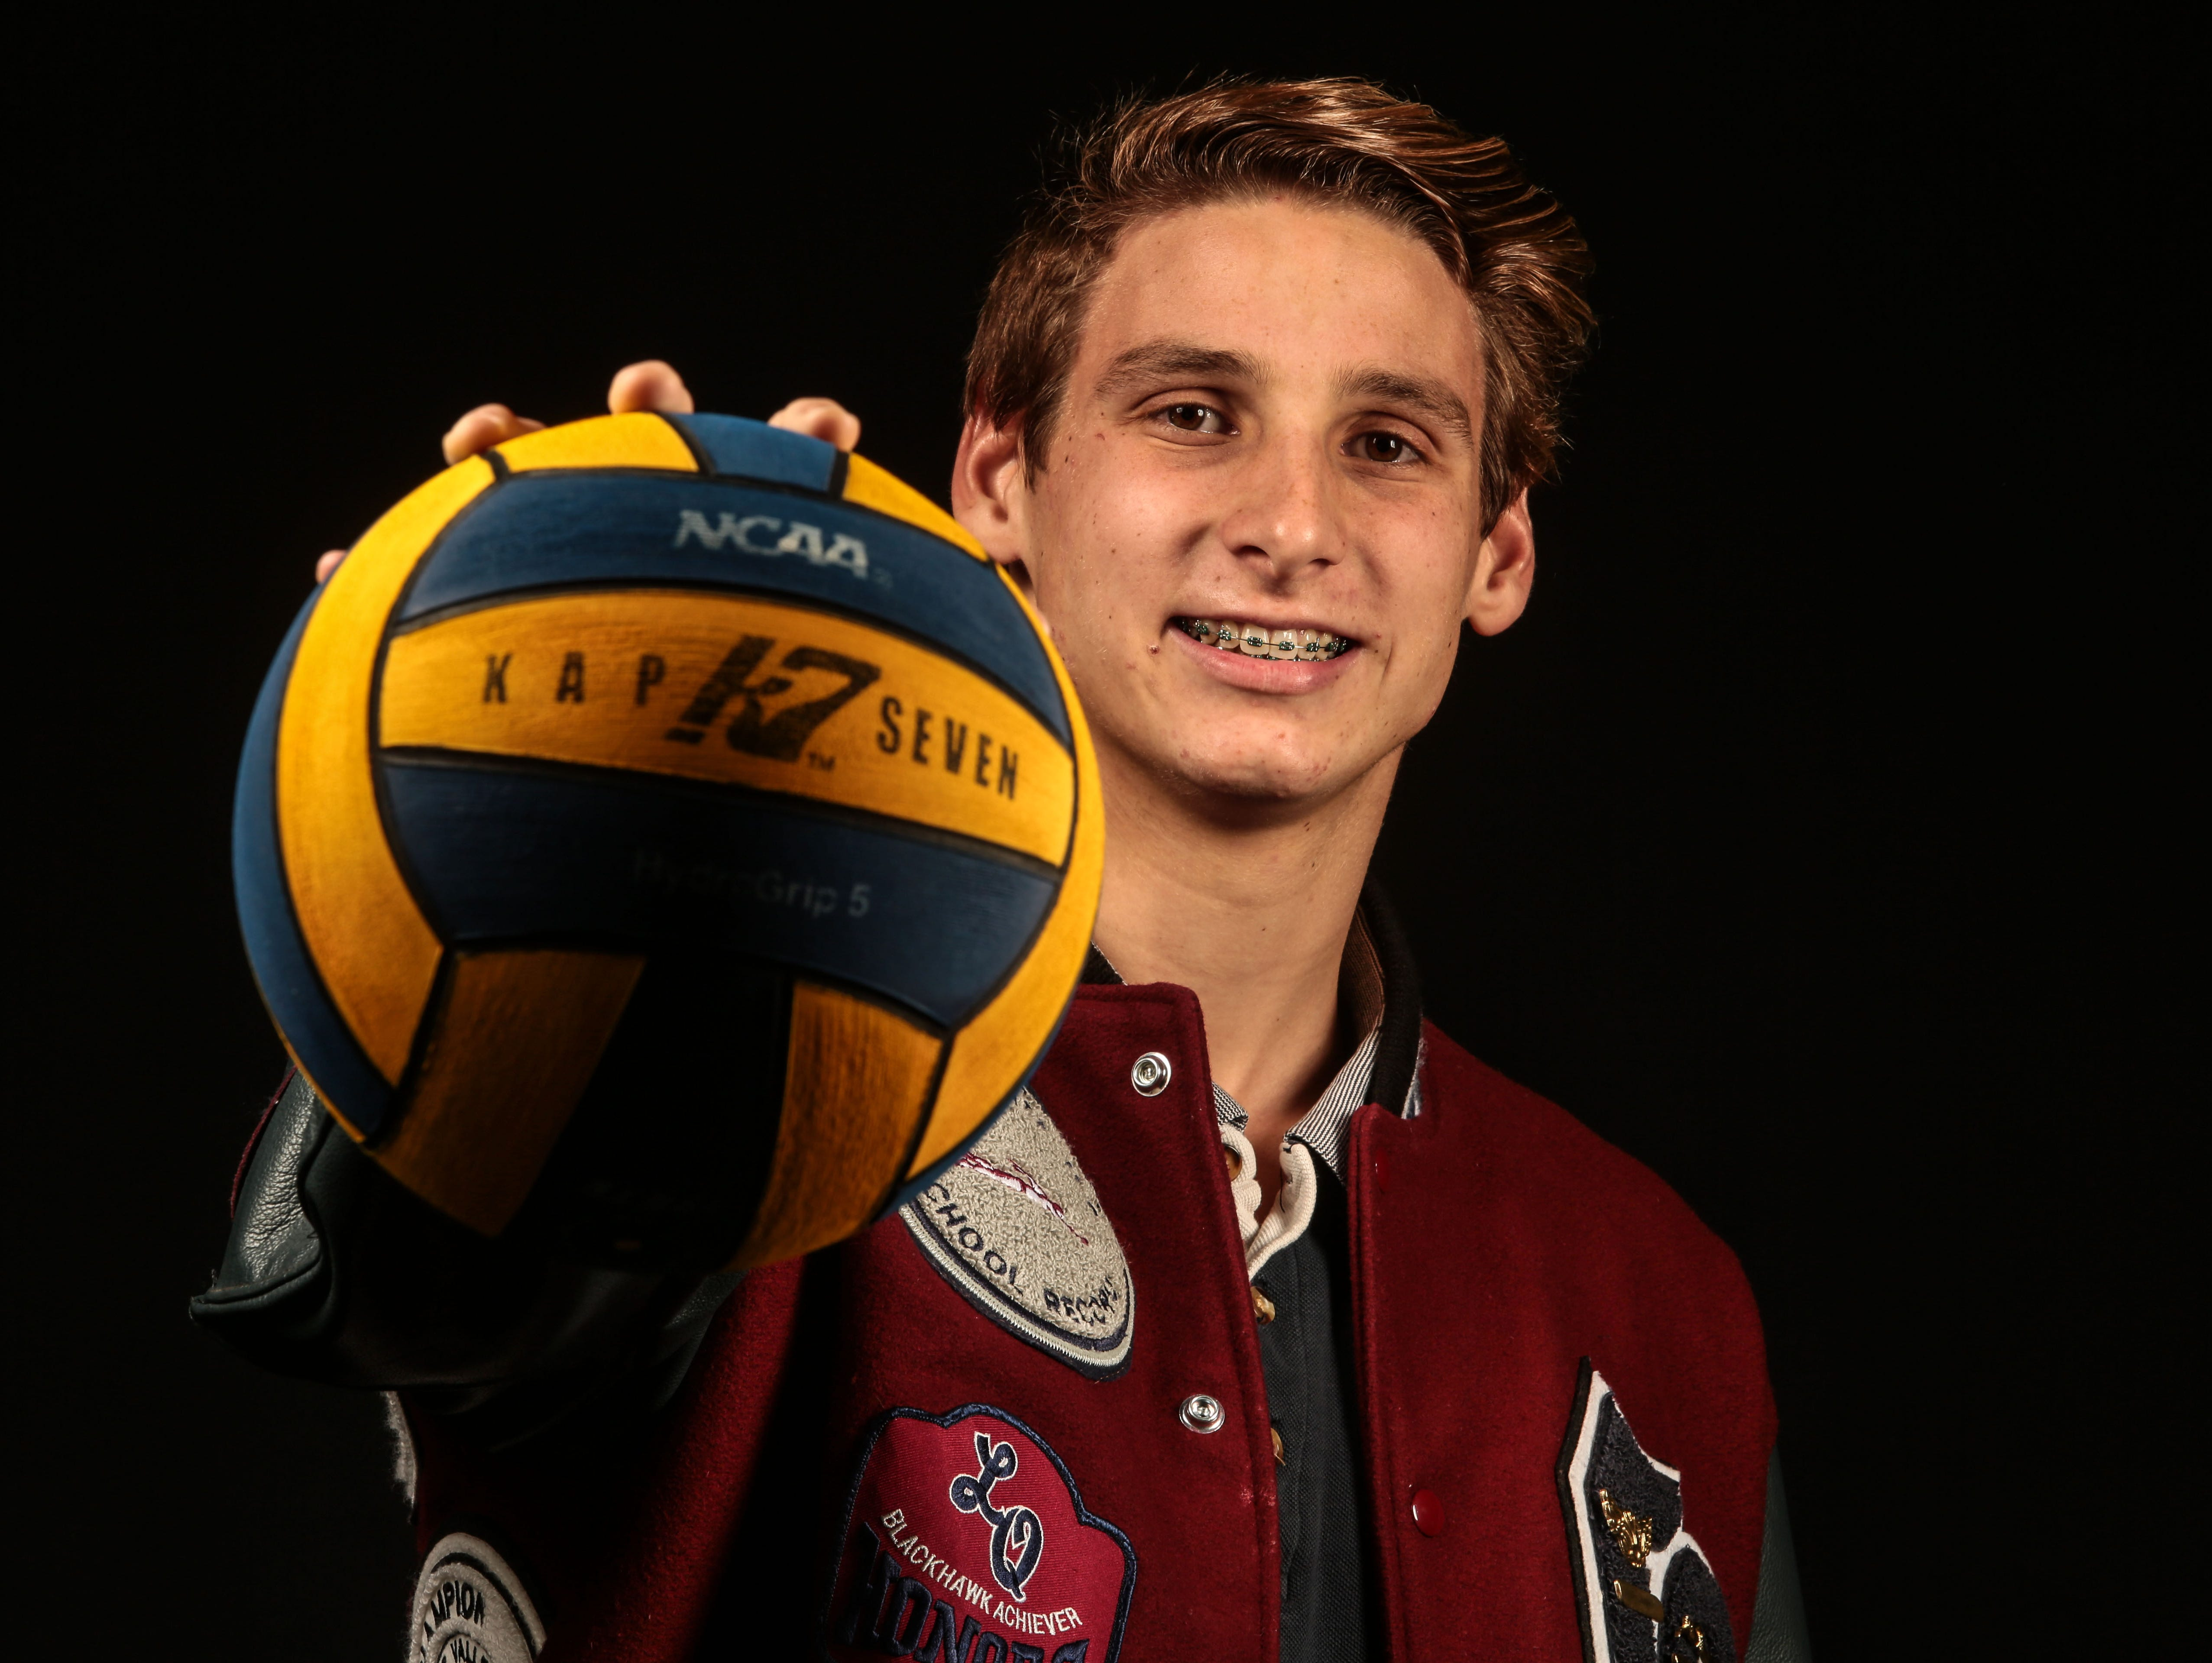 Spencer Lowell, La Quinta High water polo player on December 8, 2016 at the Desert Sun in Palm Springs.